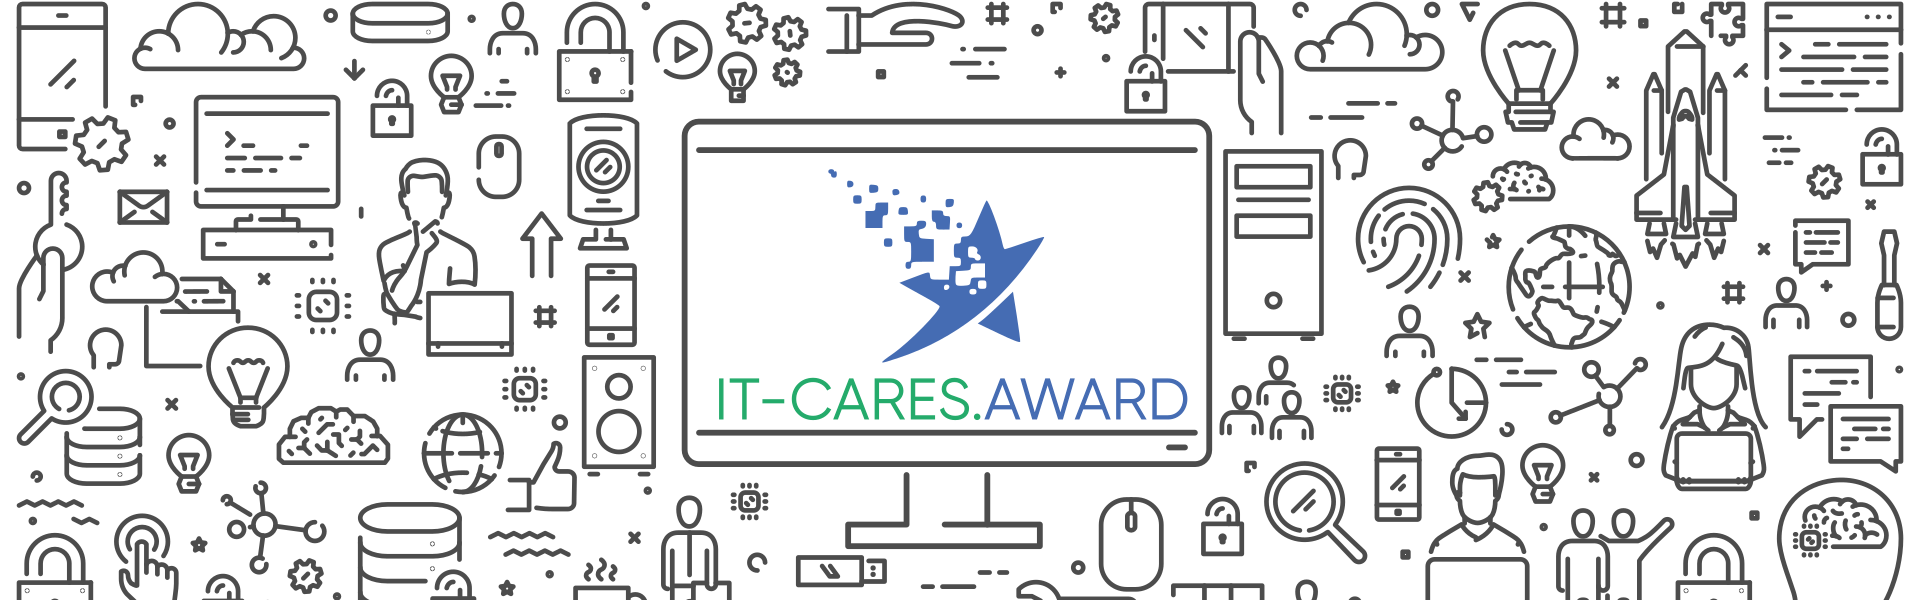 IT-Cares Award